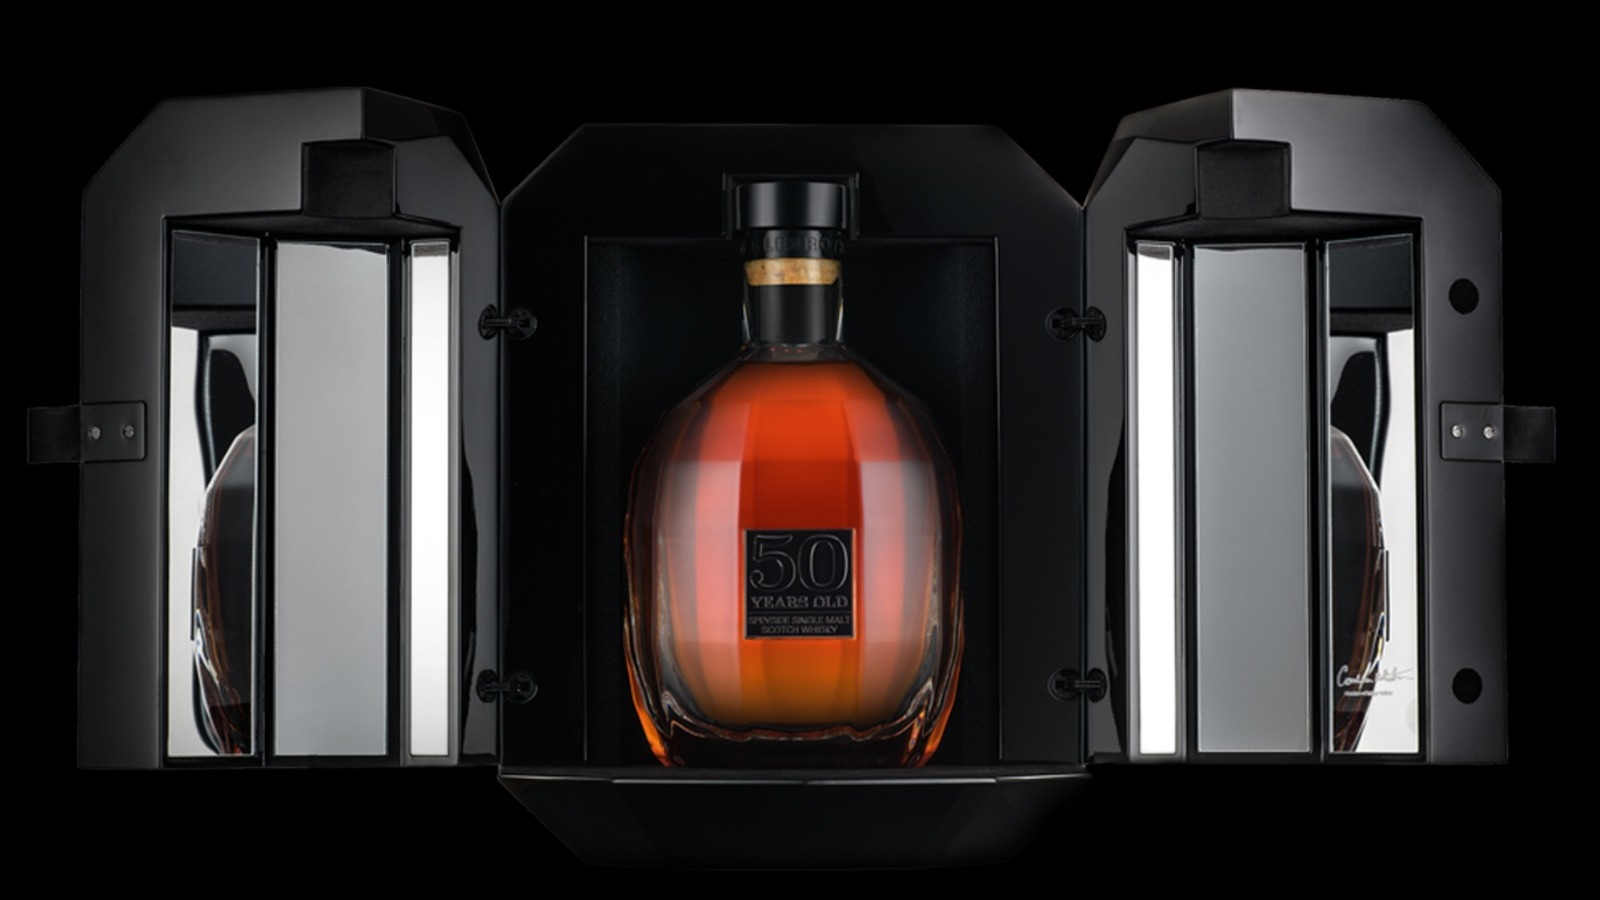 This $35,000 Scotch Has People Talking photo